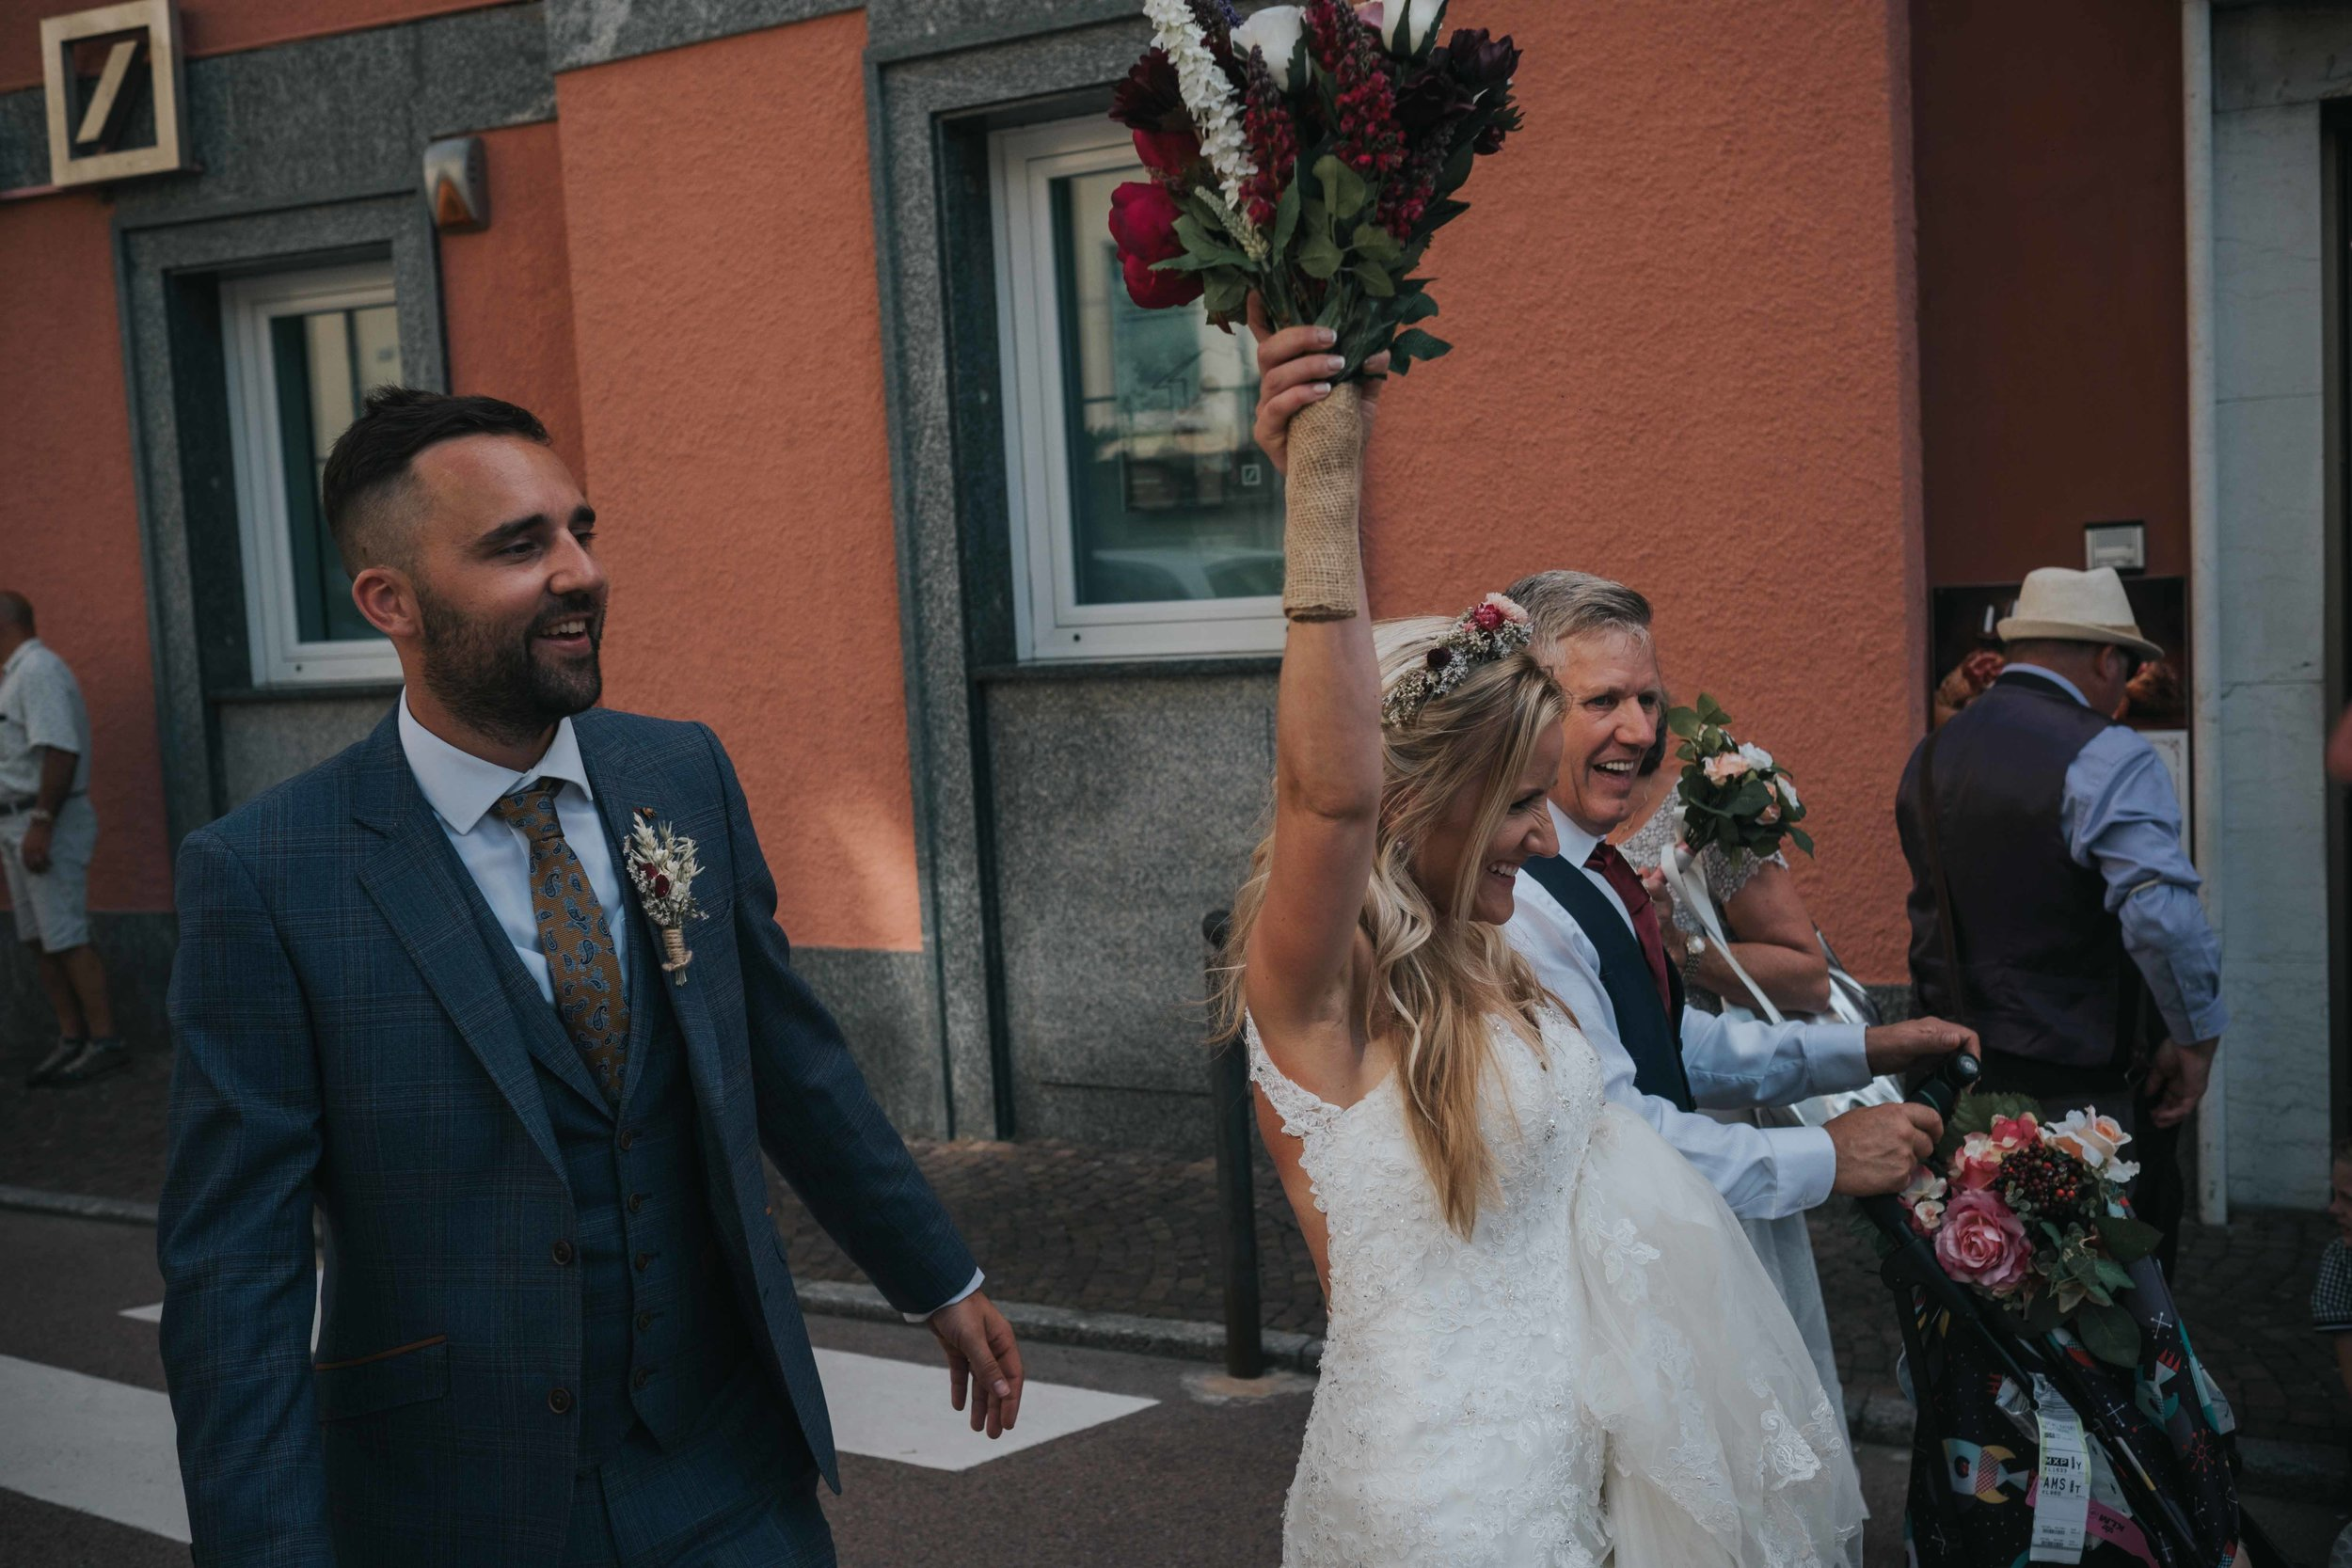 Laco Como Italy destination wedding photographer cheshire north west england documentry photography (80 of 117).jpg